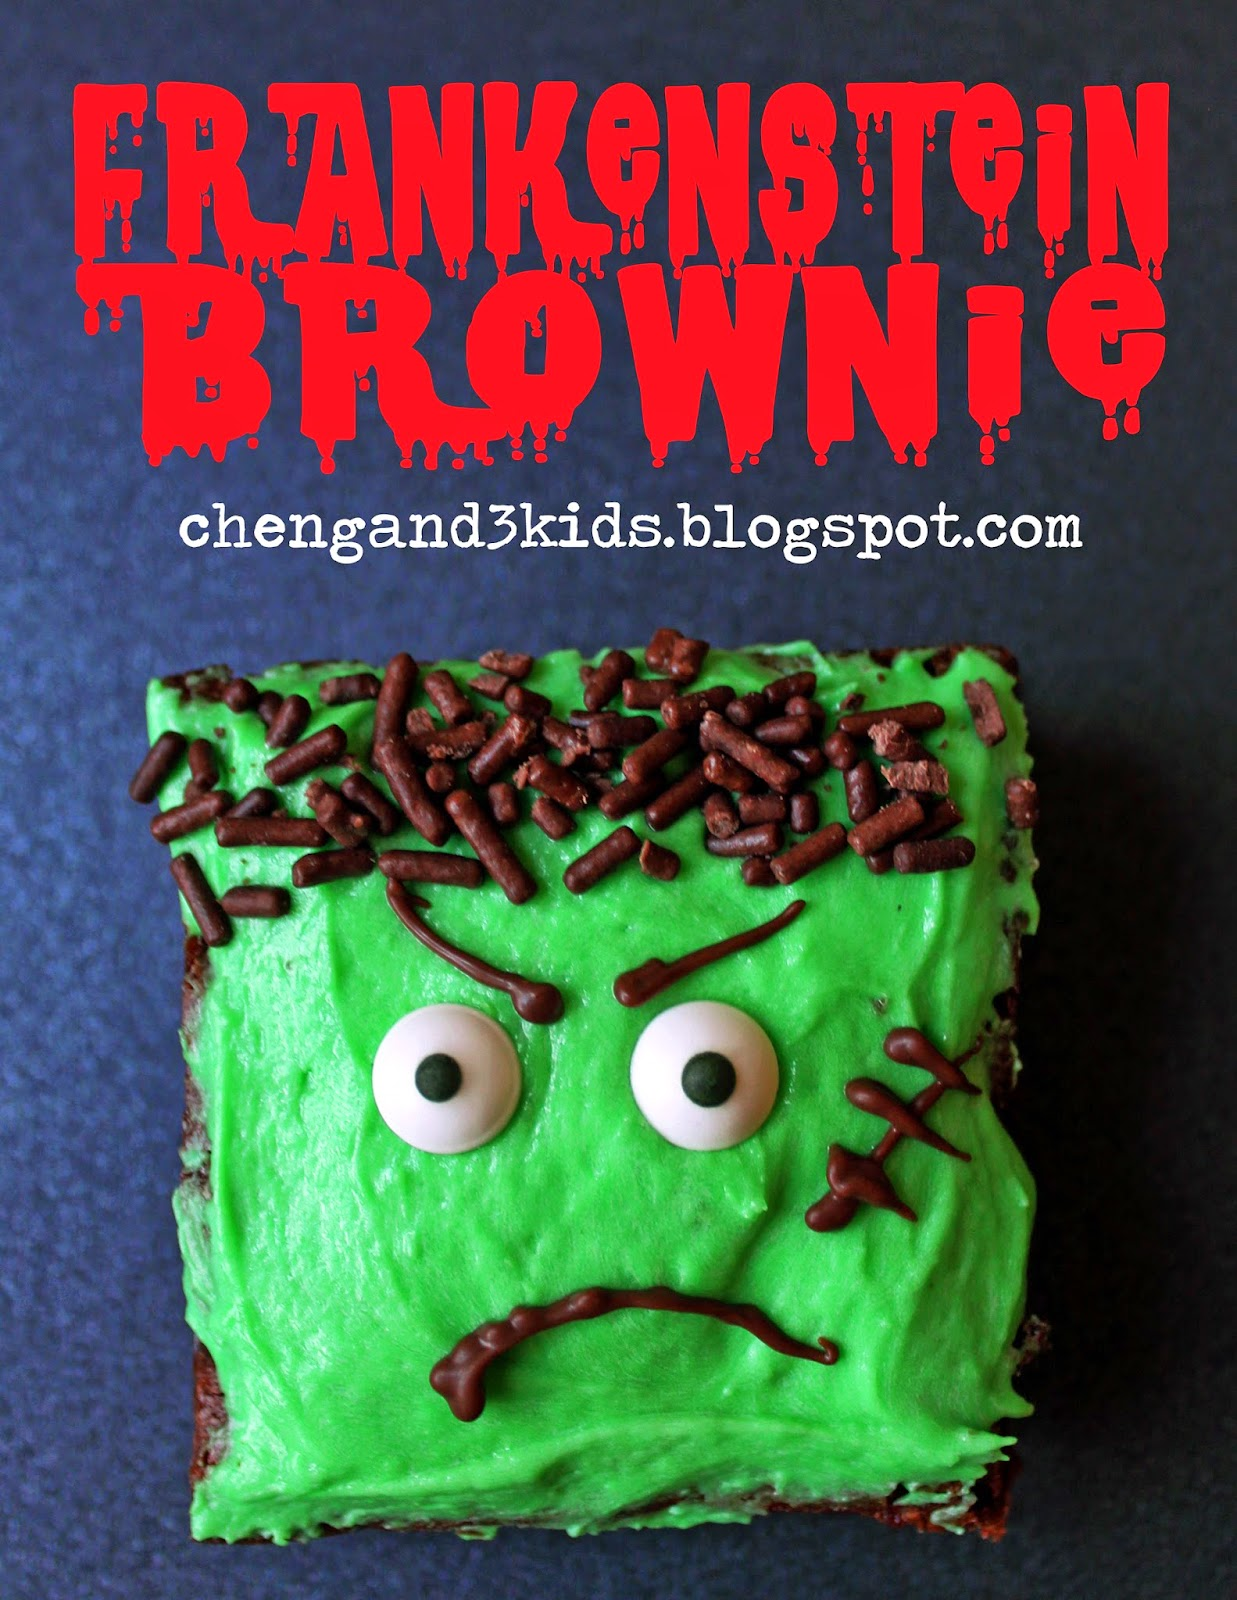 Frankenstein Brownie for Halloween by chengand3kids.blogspot.com